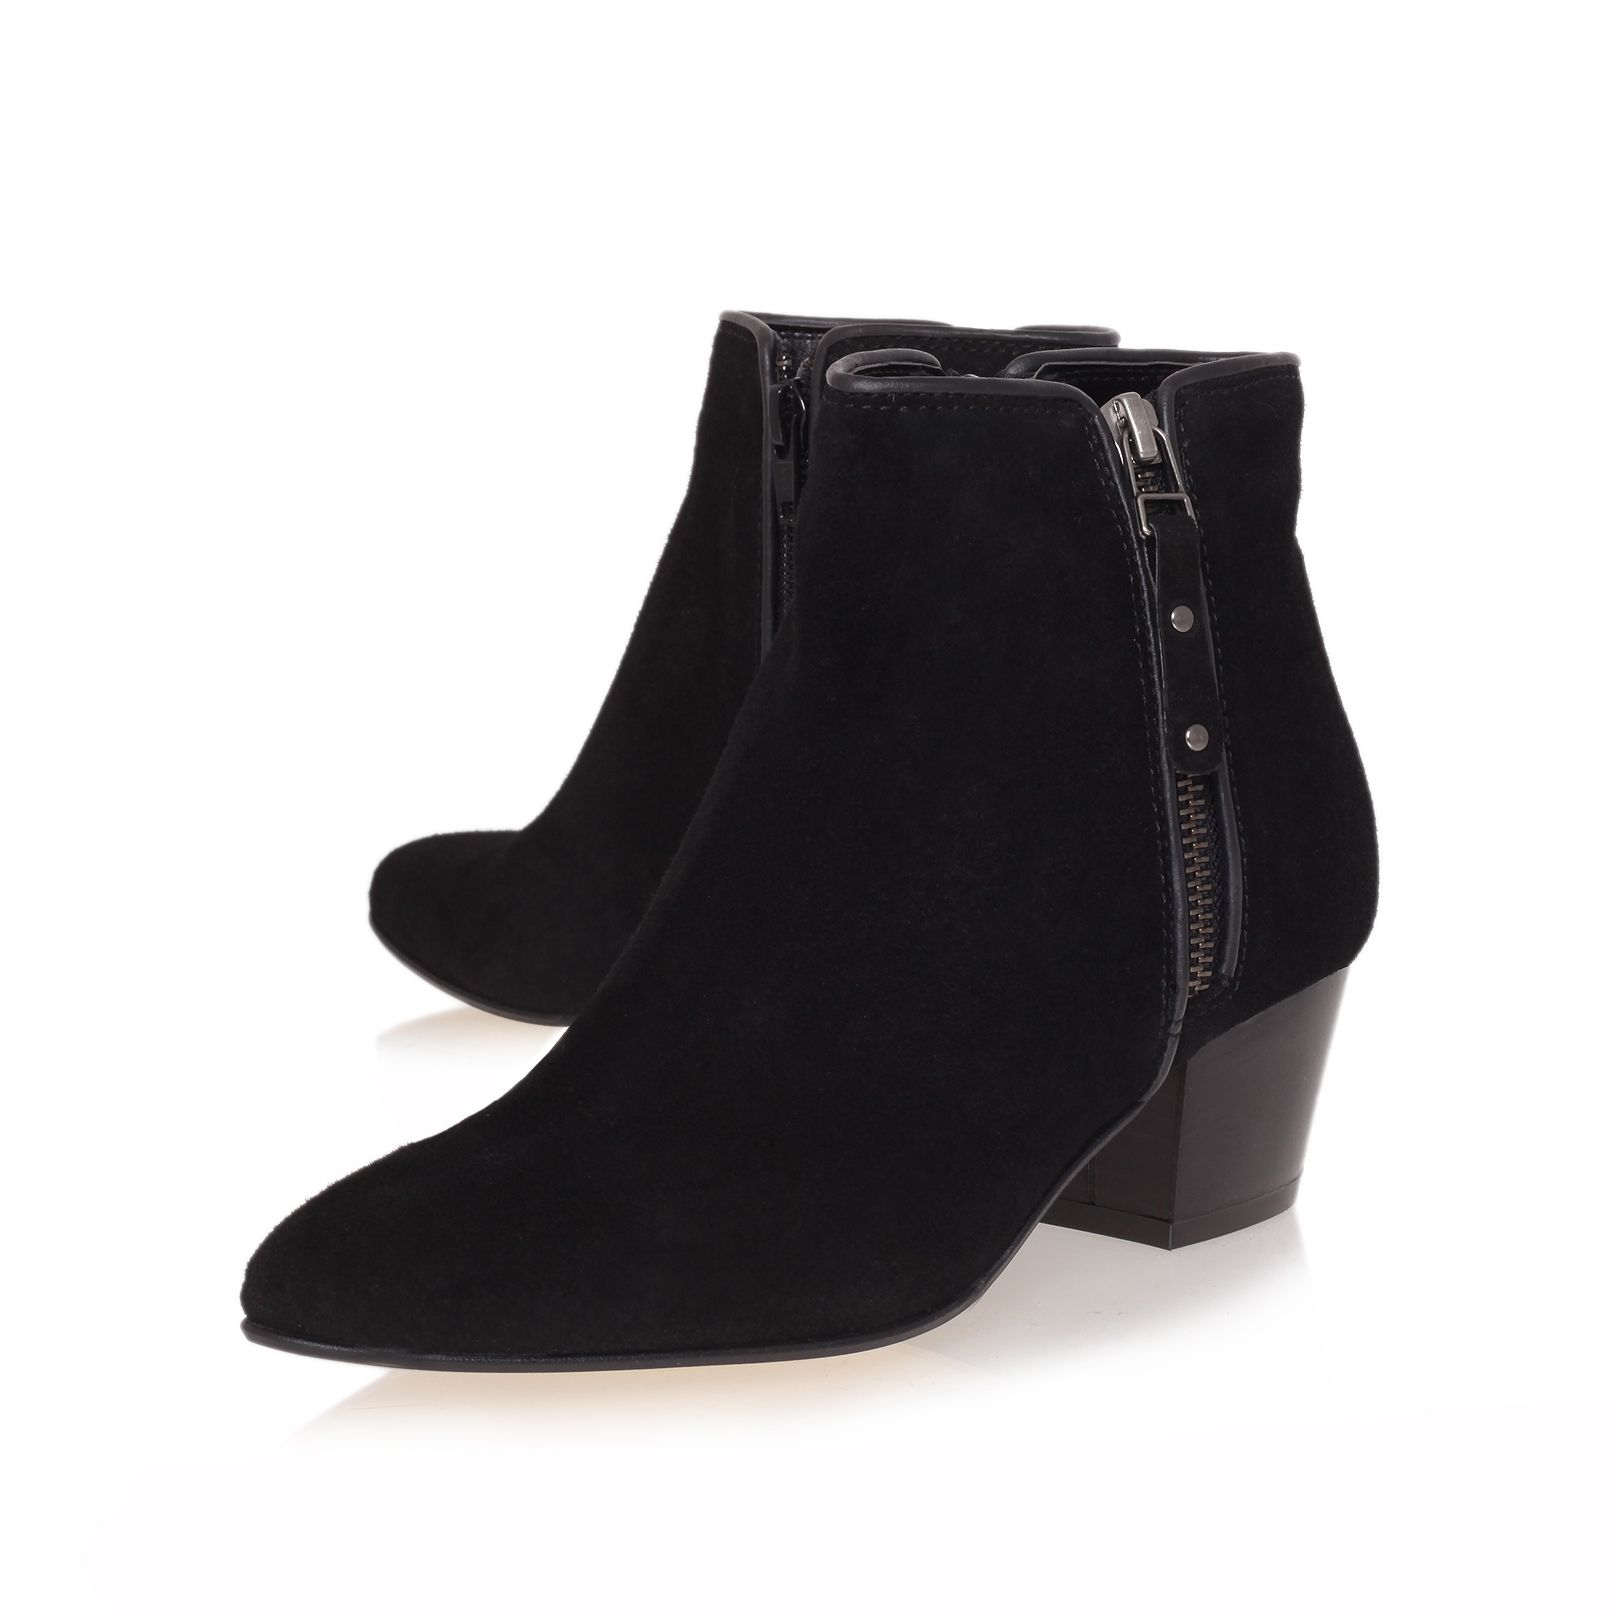 Scatter boots